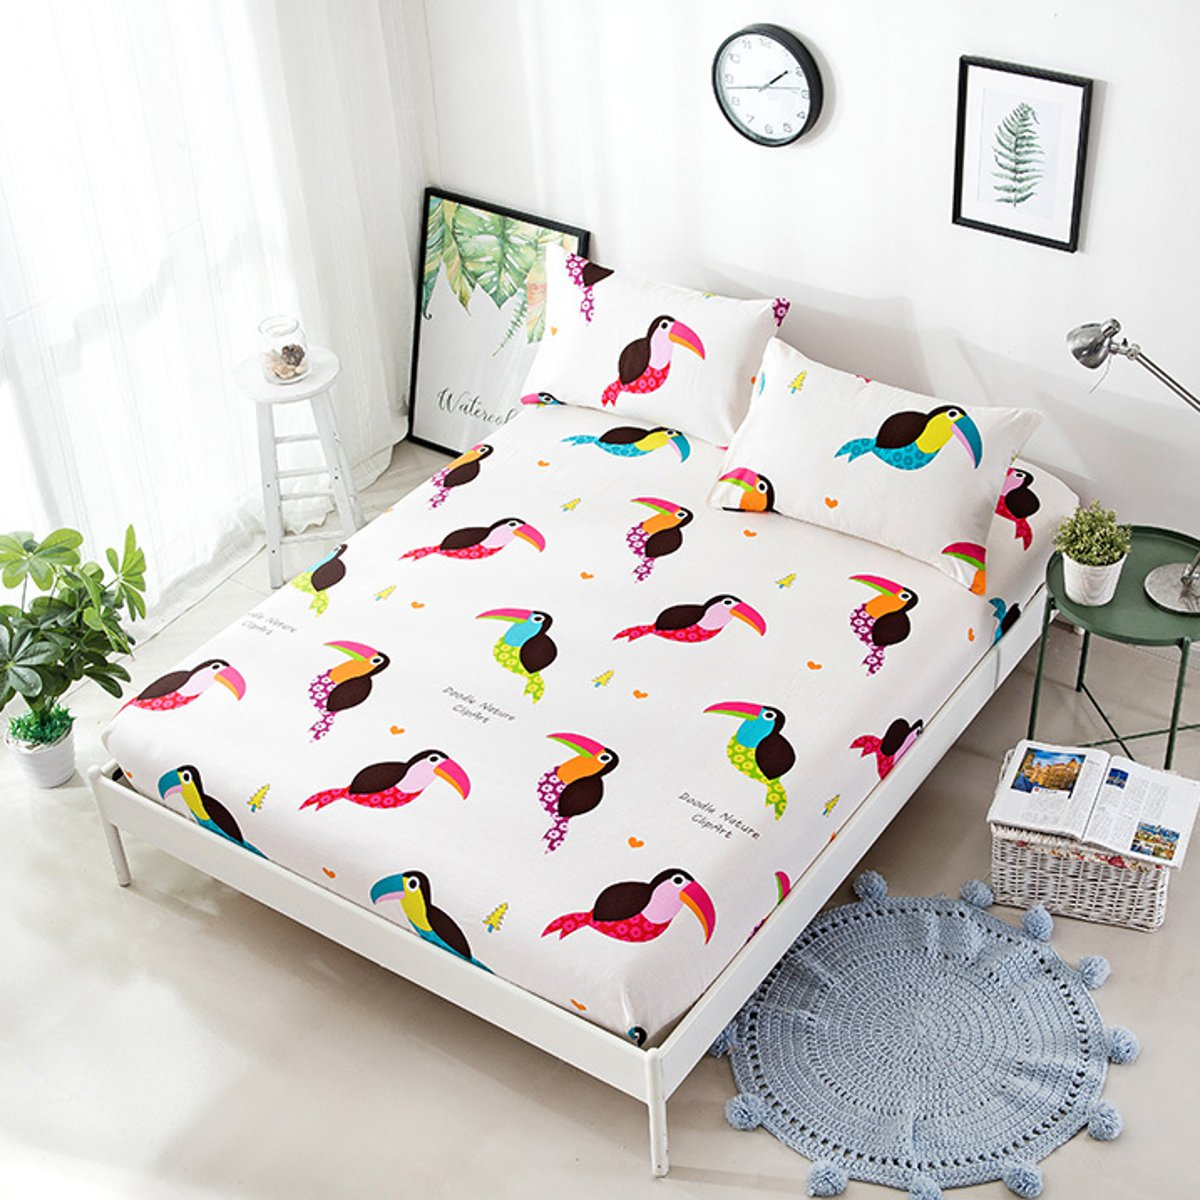 3 Piece Printed Pattern Cotton Bed Sheets Pillow Cases Single Double